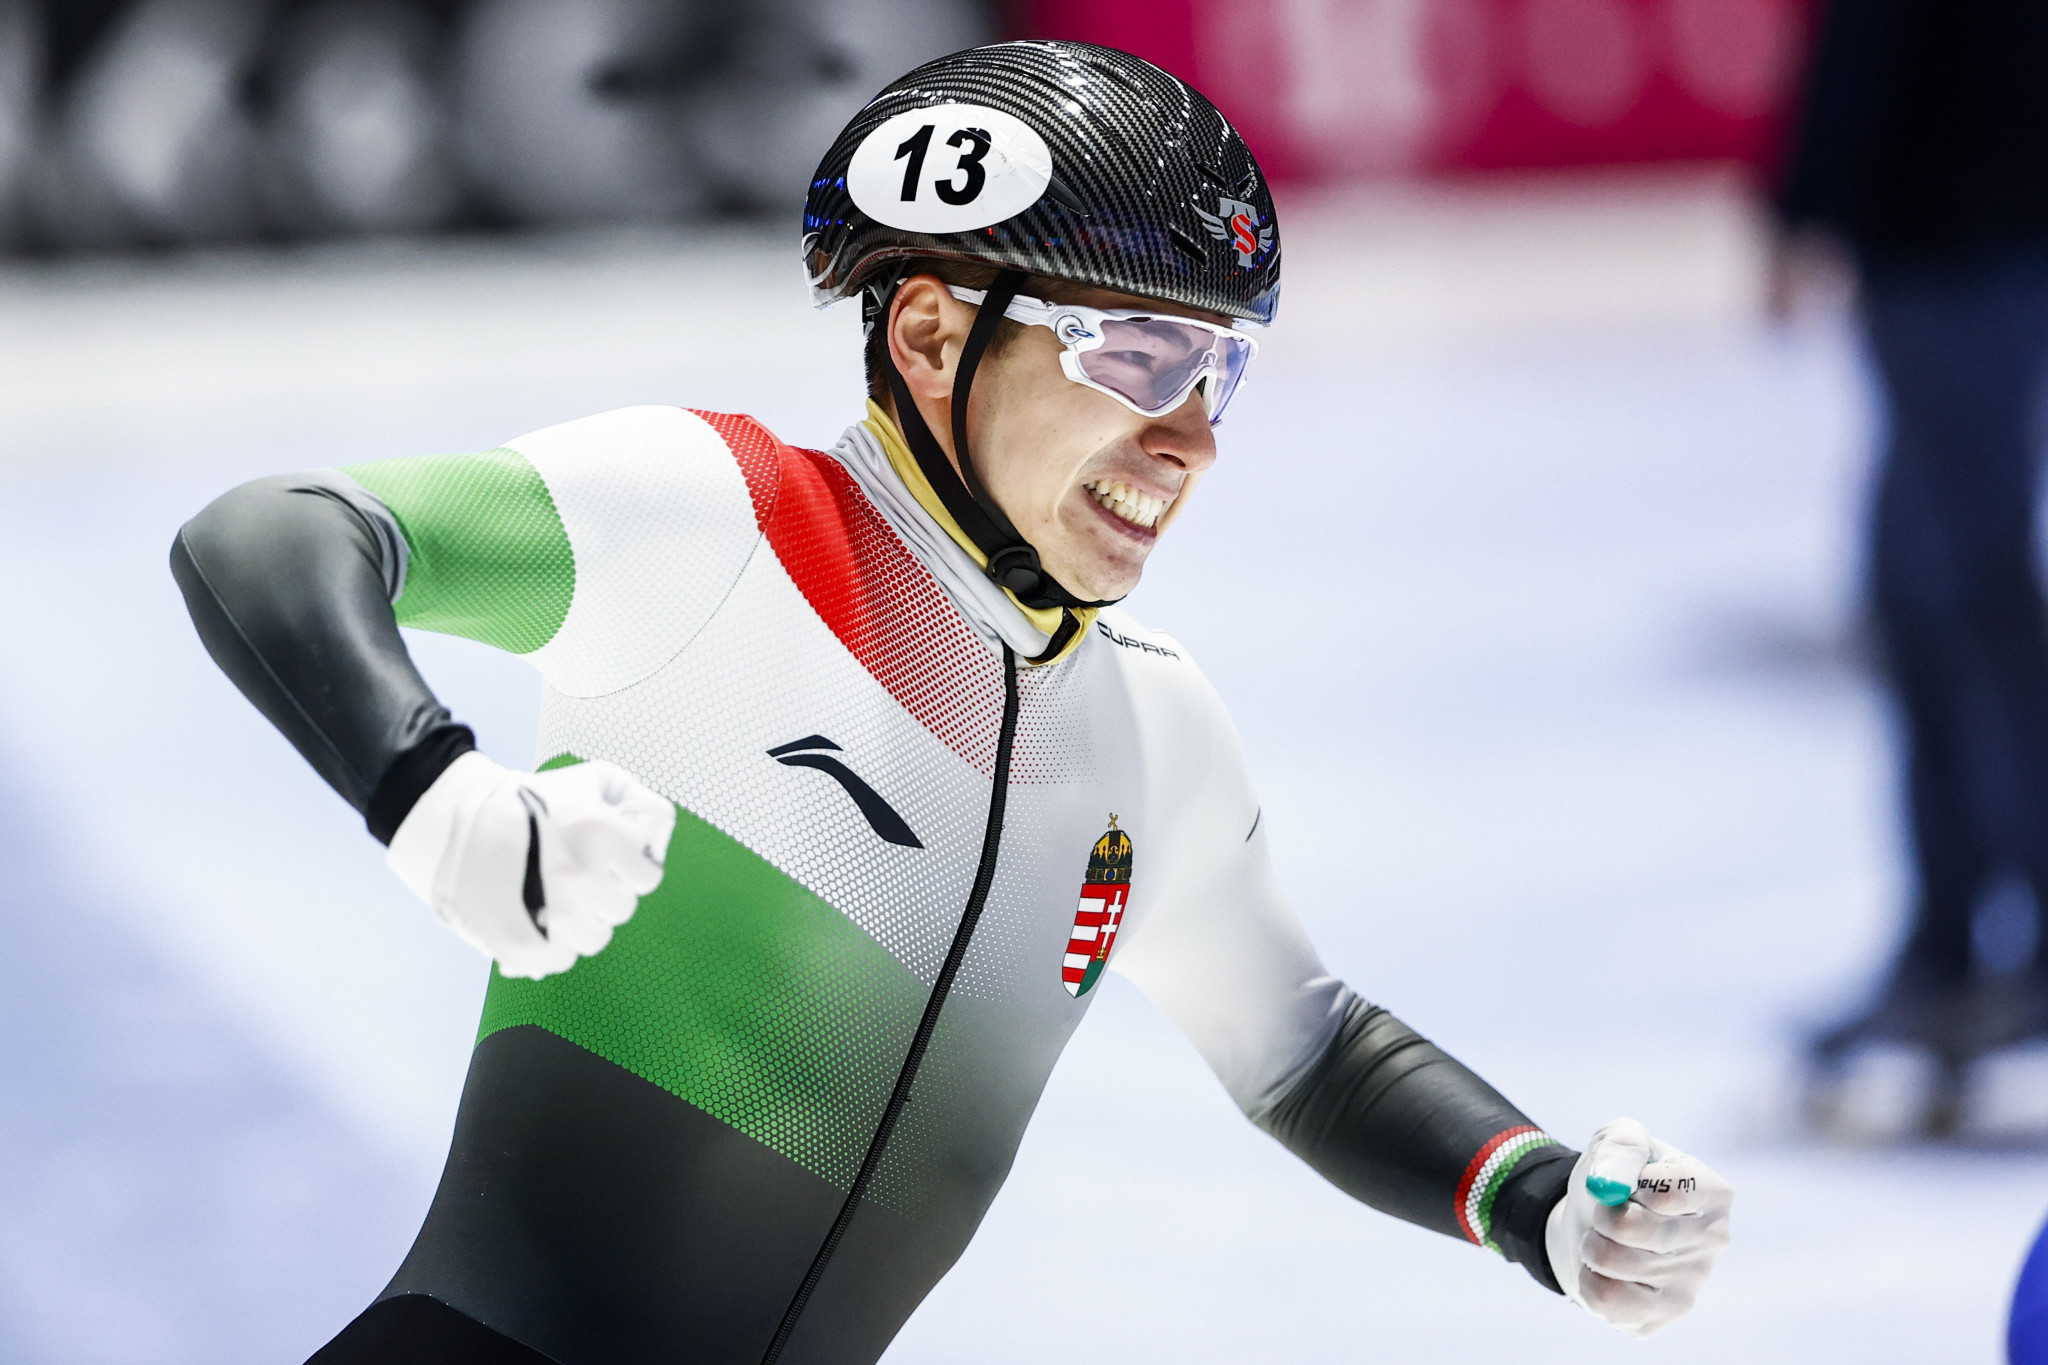 Hungary's Shaoang Liu was crowned the overall men's champion ©Getty Images